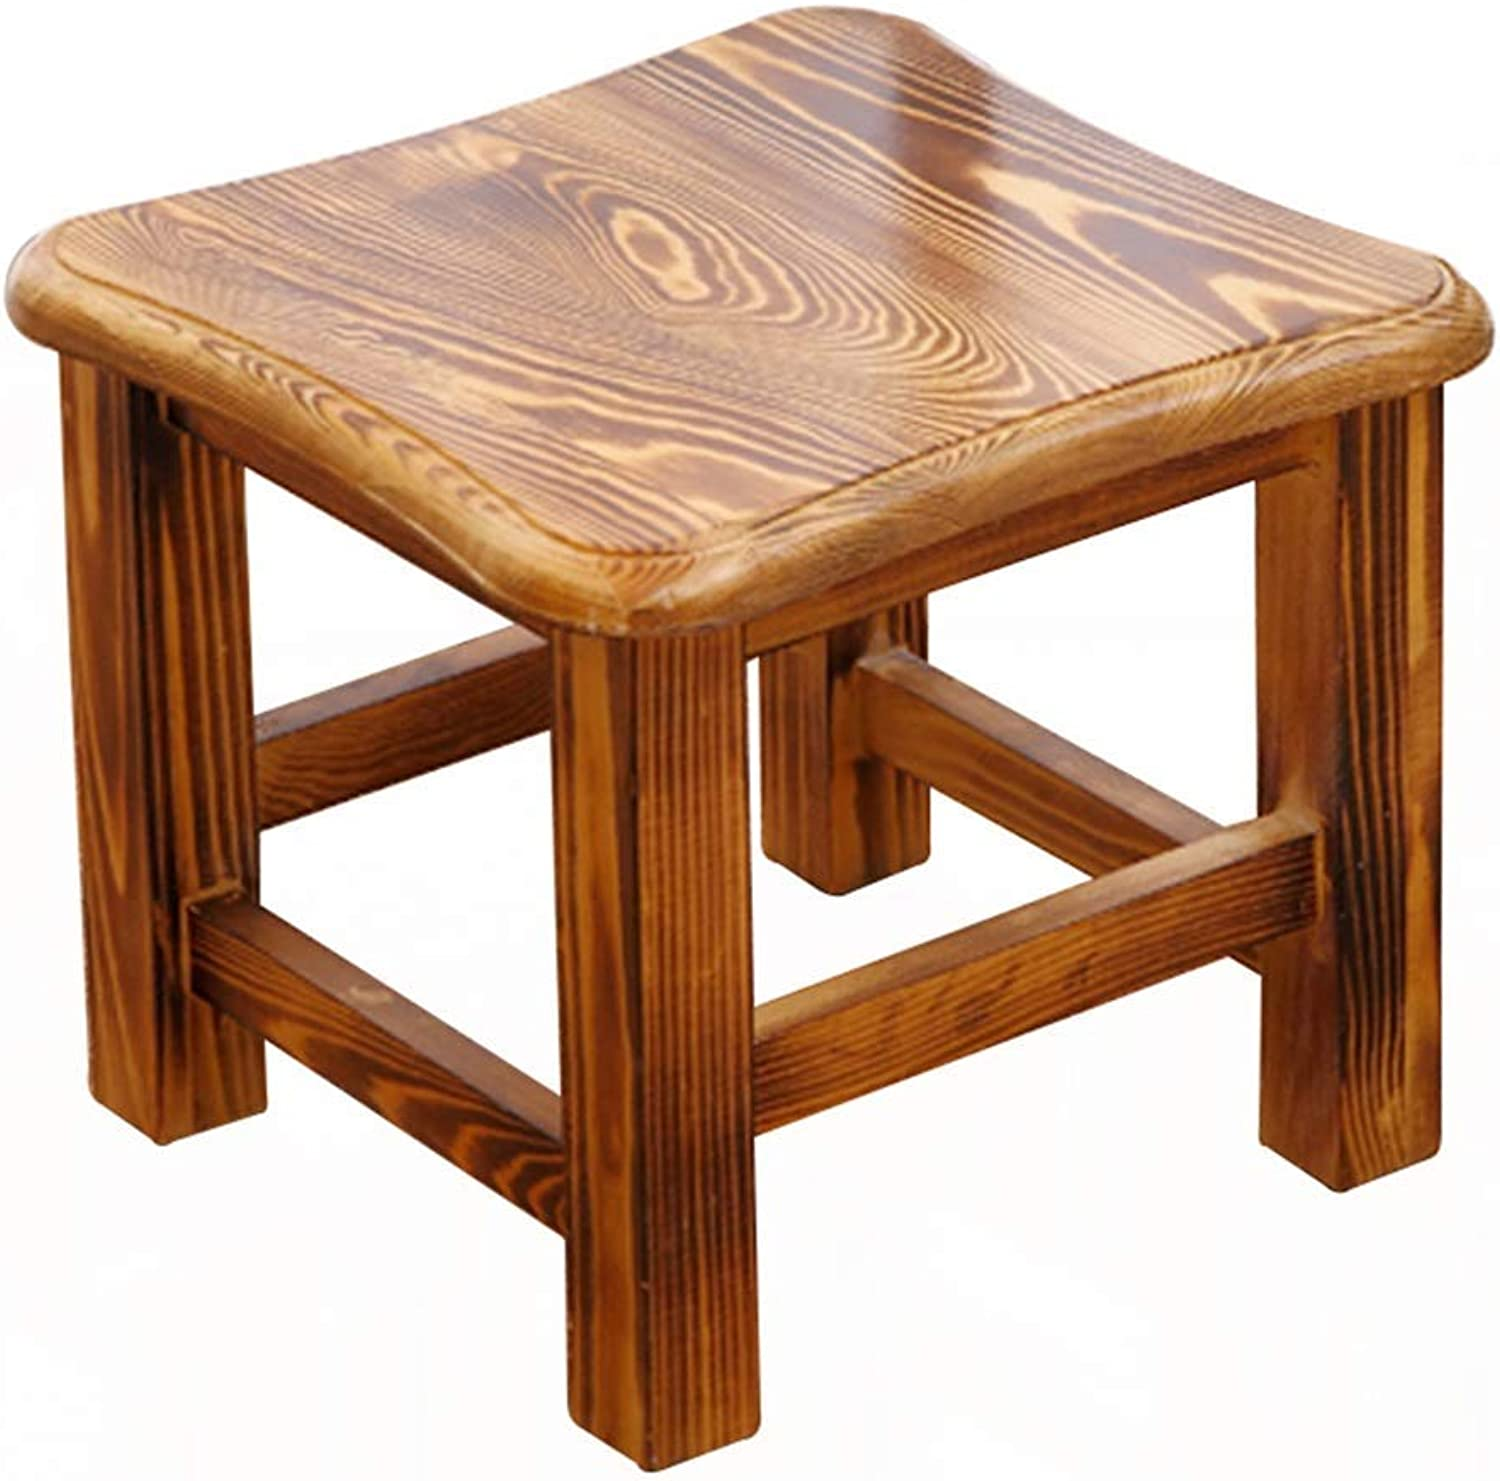 20-Moozhitech Stool - shoes Bench, Household Solid Wood Coffee Table Stool, Adult Small Stool Low Stool -Comfortable Decoration (color   A)